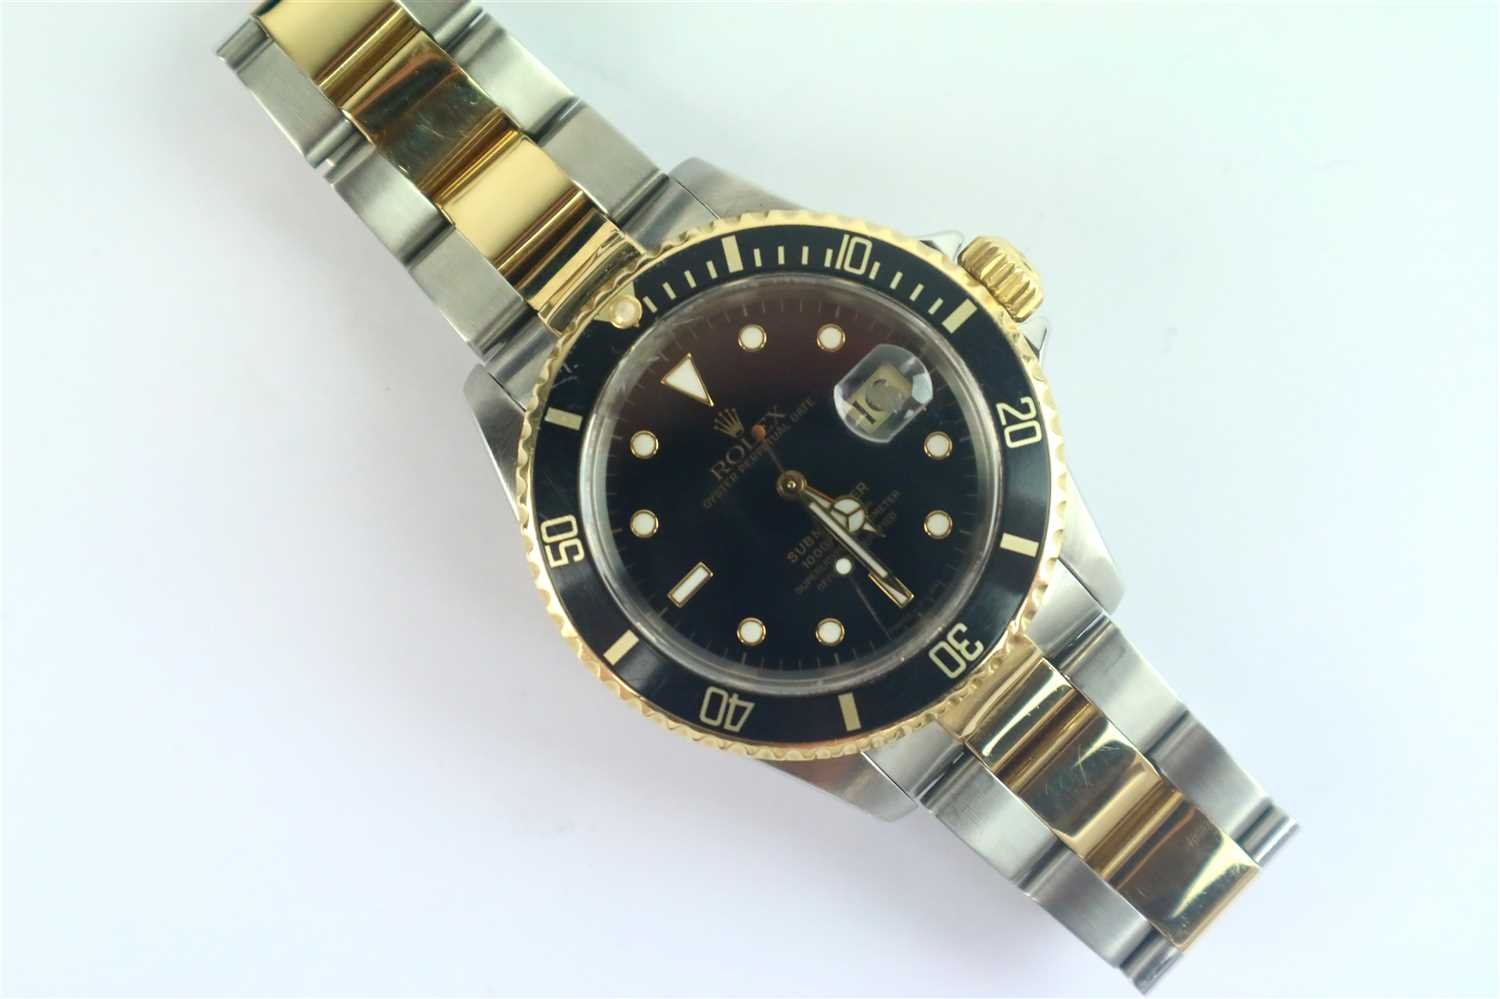 242 - A Gentleman's Rolex Submariner Wristwatch Ref. 16613